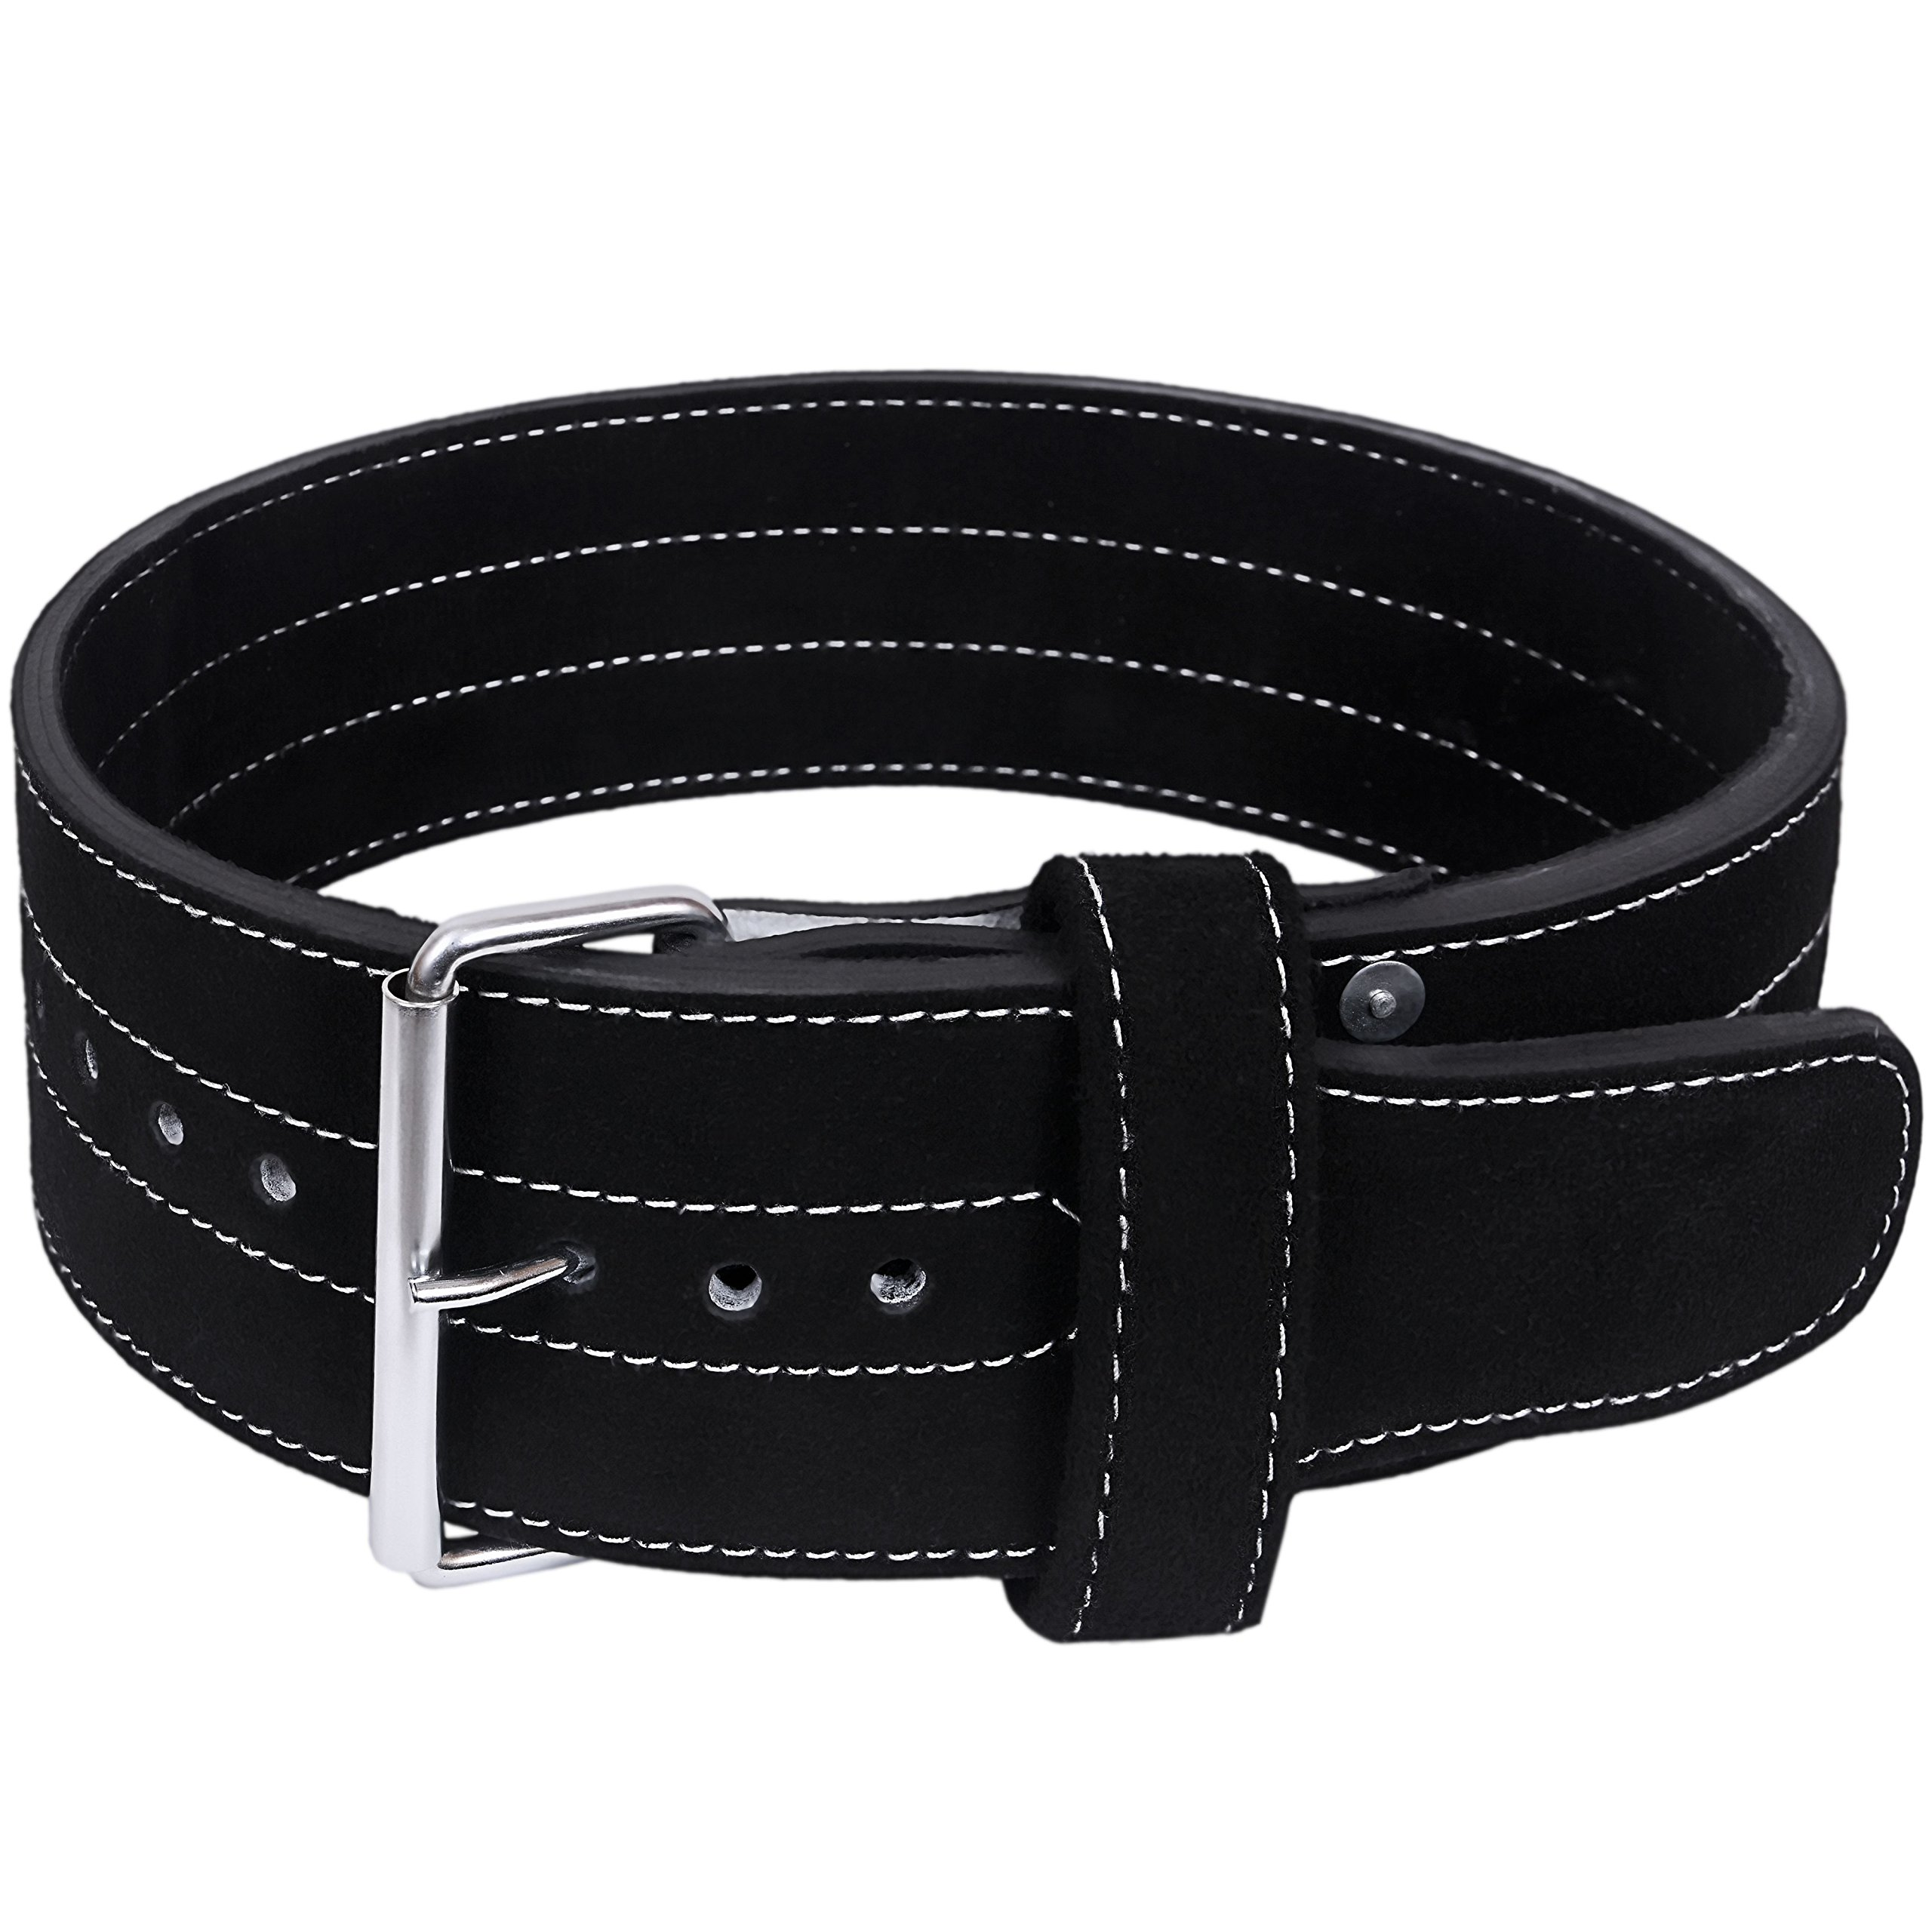 Hawk Single Prong Power Lifting Belt Inzer Weightlifting Belt Competition Power Belt, 10mm Thick Powerlifting Belt, Top Quality, 1 YEAR WARRANTY!!! SMALL